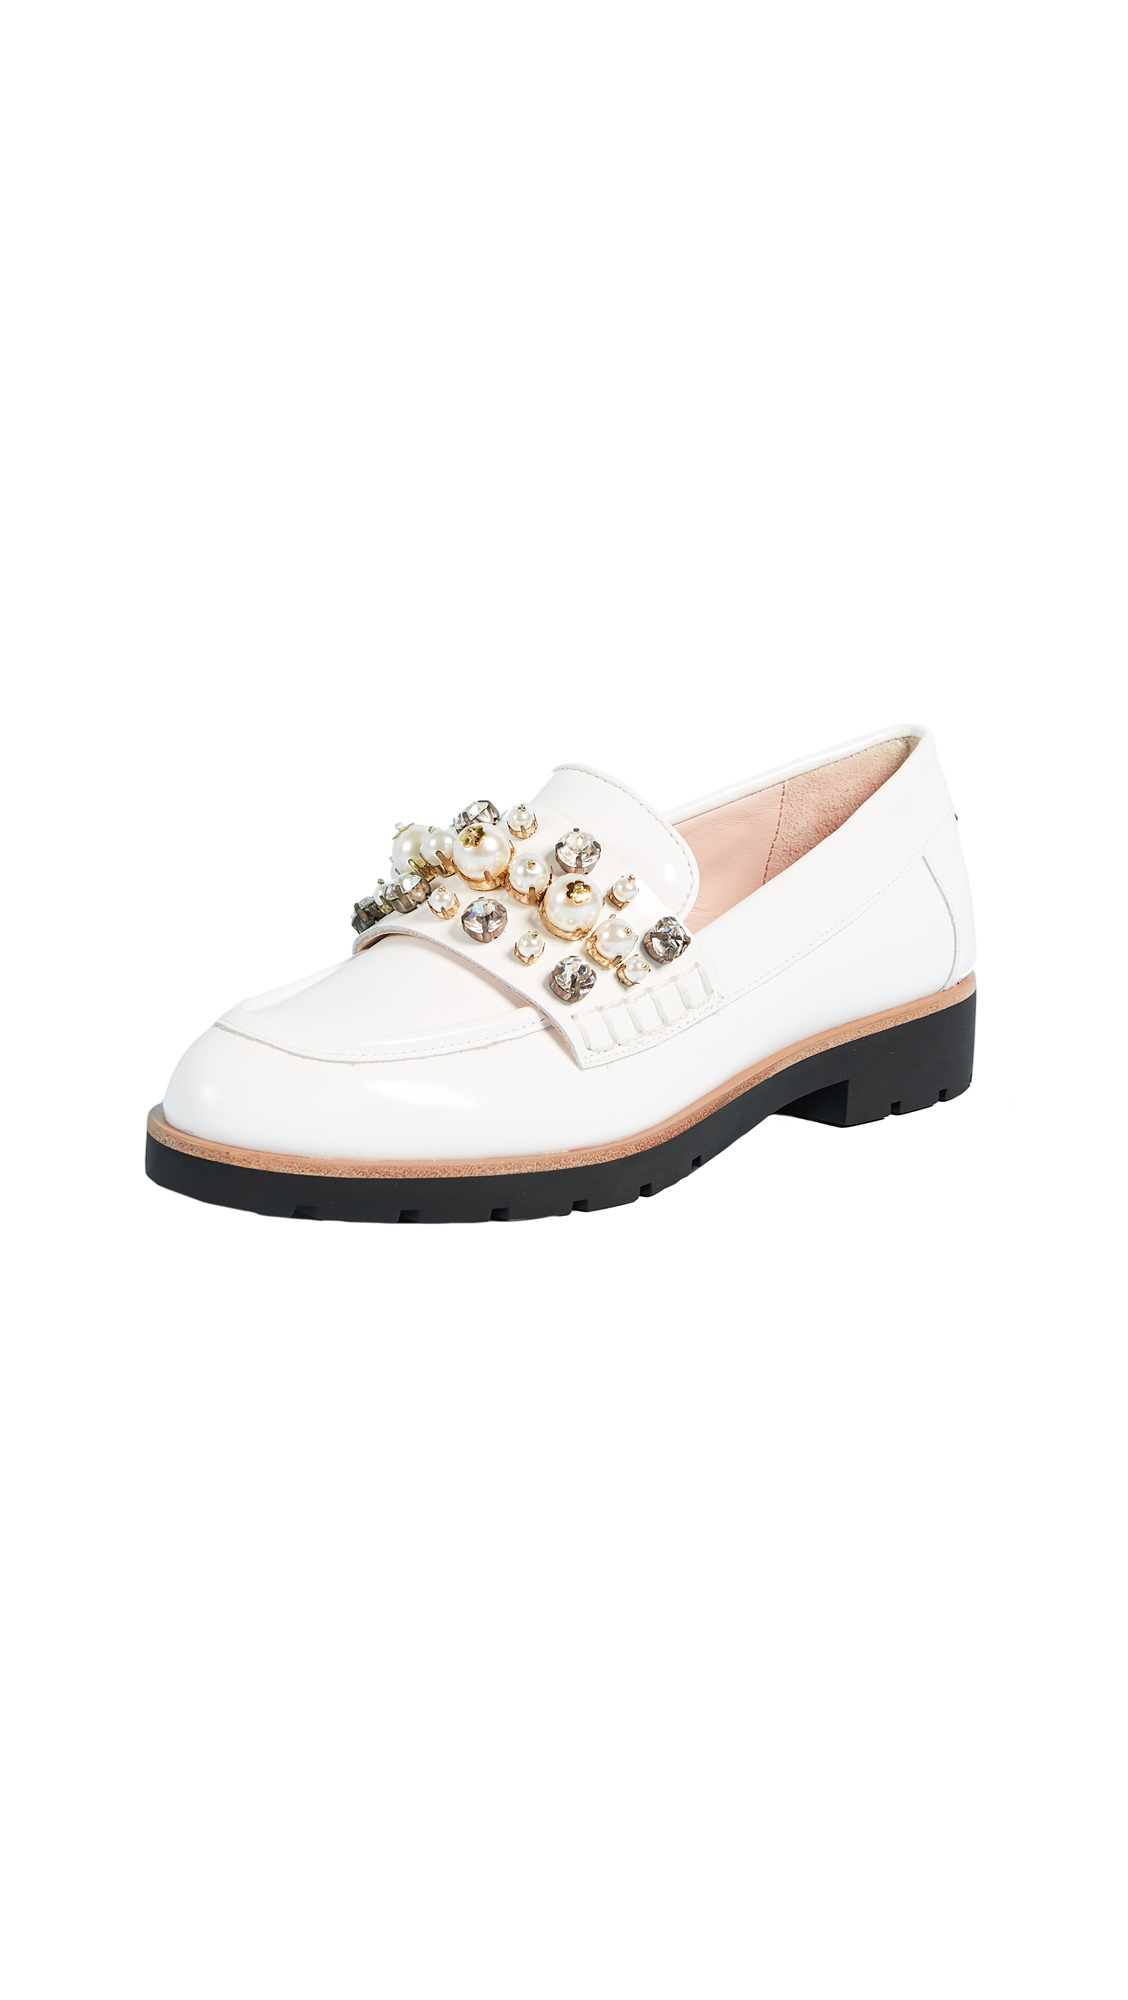 Kate Spade New York Karry Too Studded Loafers - Off White